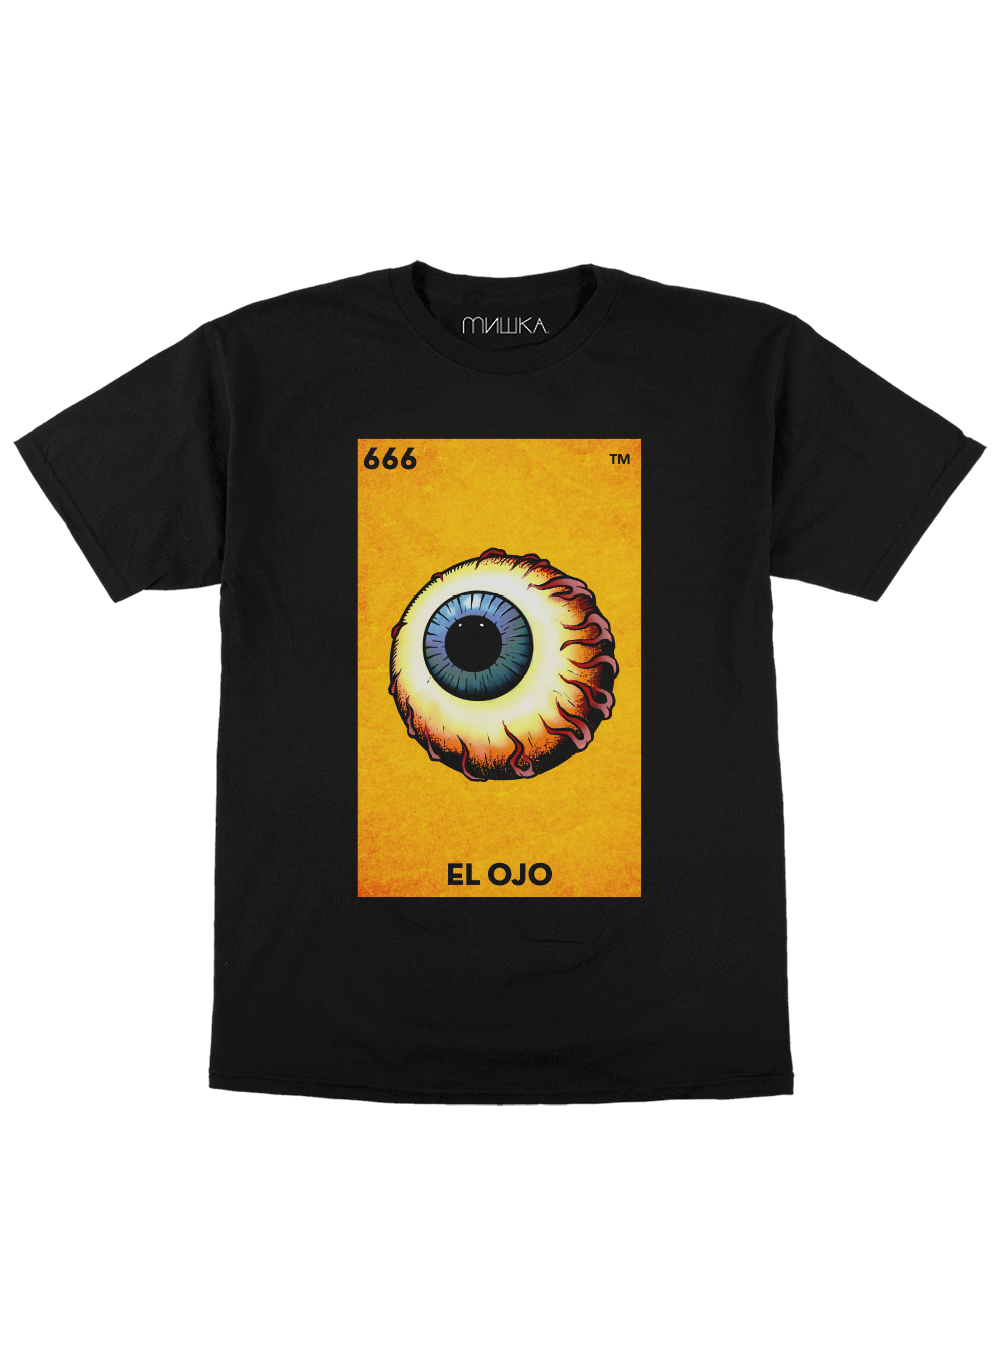 El Ojo Keep Watch